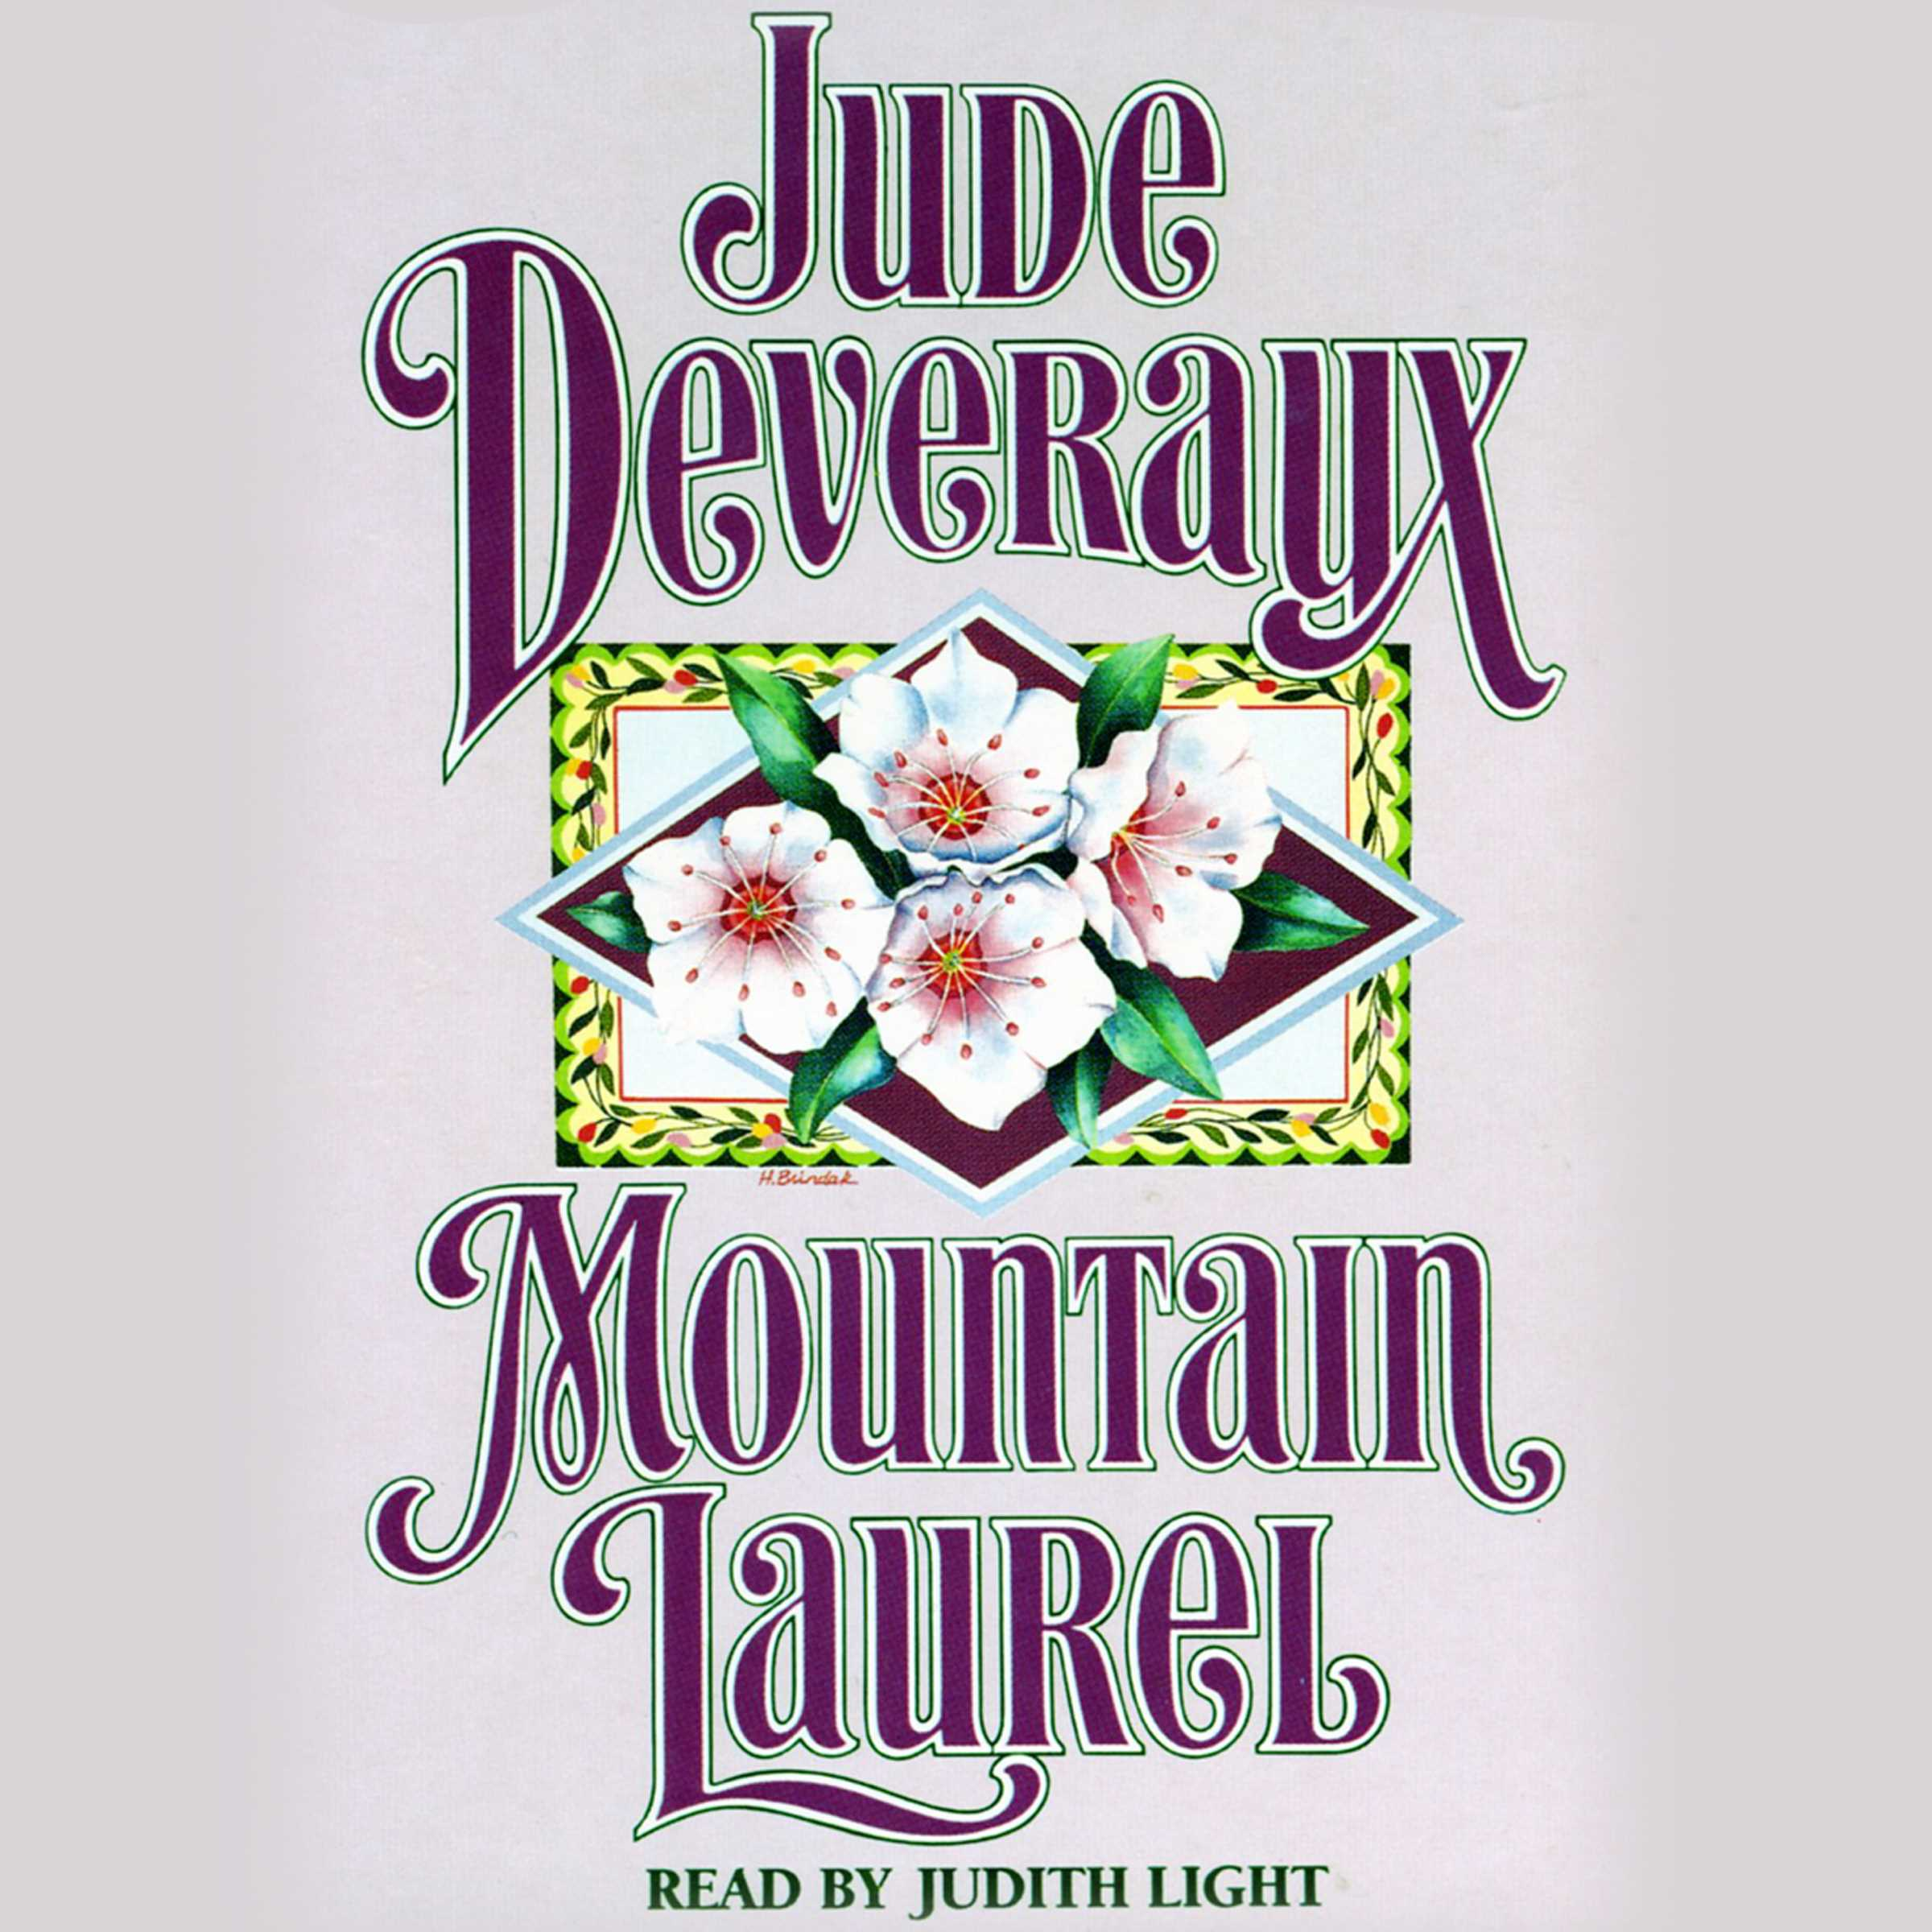 Mountain-laurel-9780743542937_hr